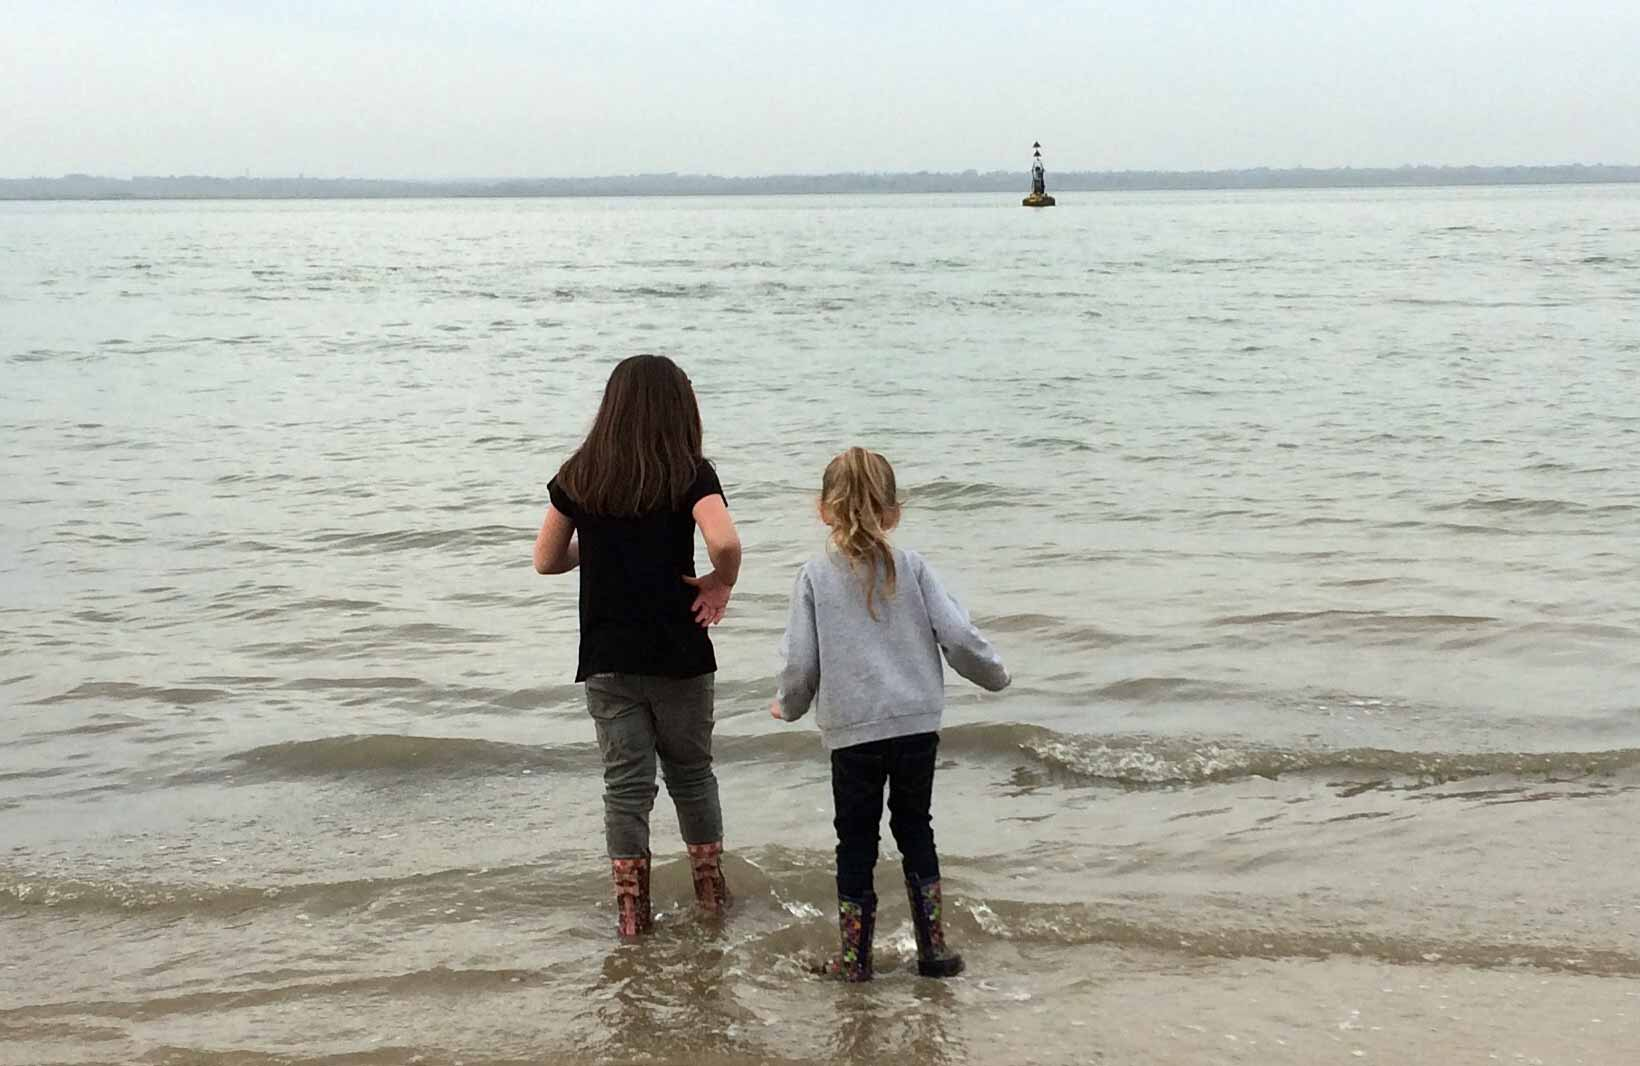 Two little girls wash their muddy wellies while looking out to sea next to Fort Victoria on the Isle of Wight.